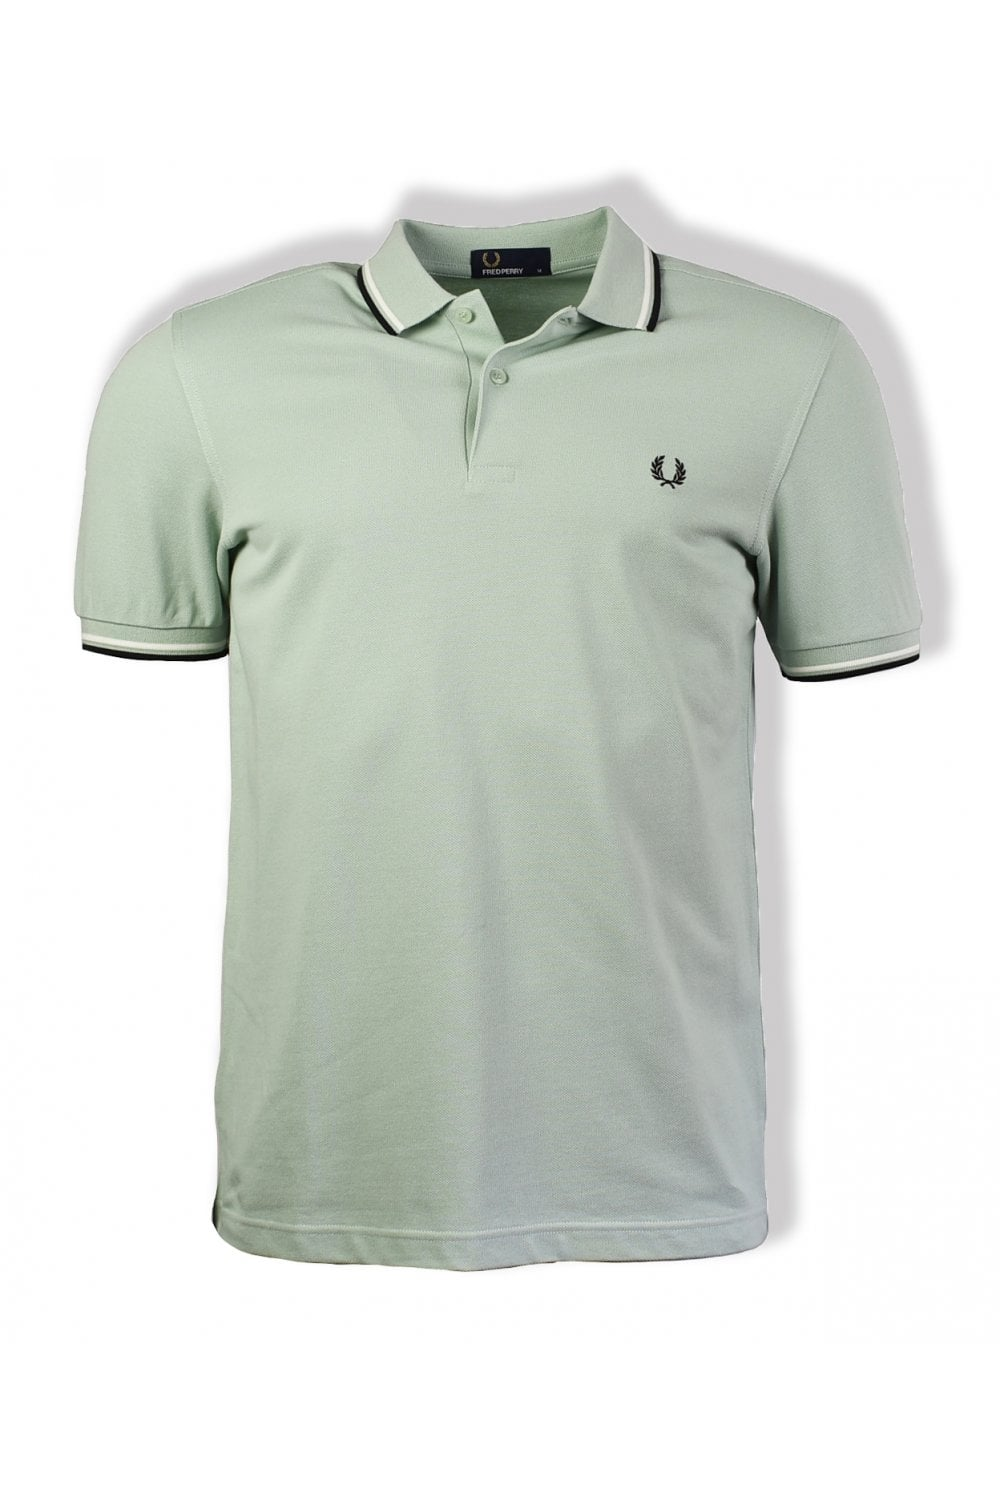 16a1f6e2 Fred Perry Twin Tipped Polo Shirt (Mint/Snow White/Black) | ThirtySix